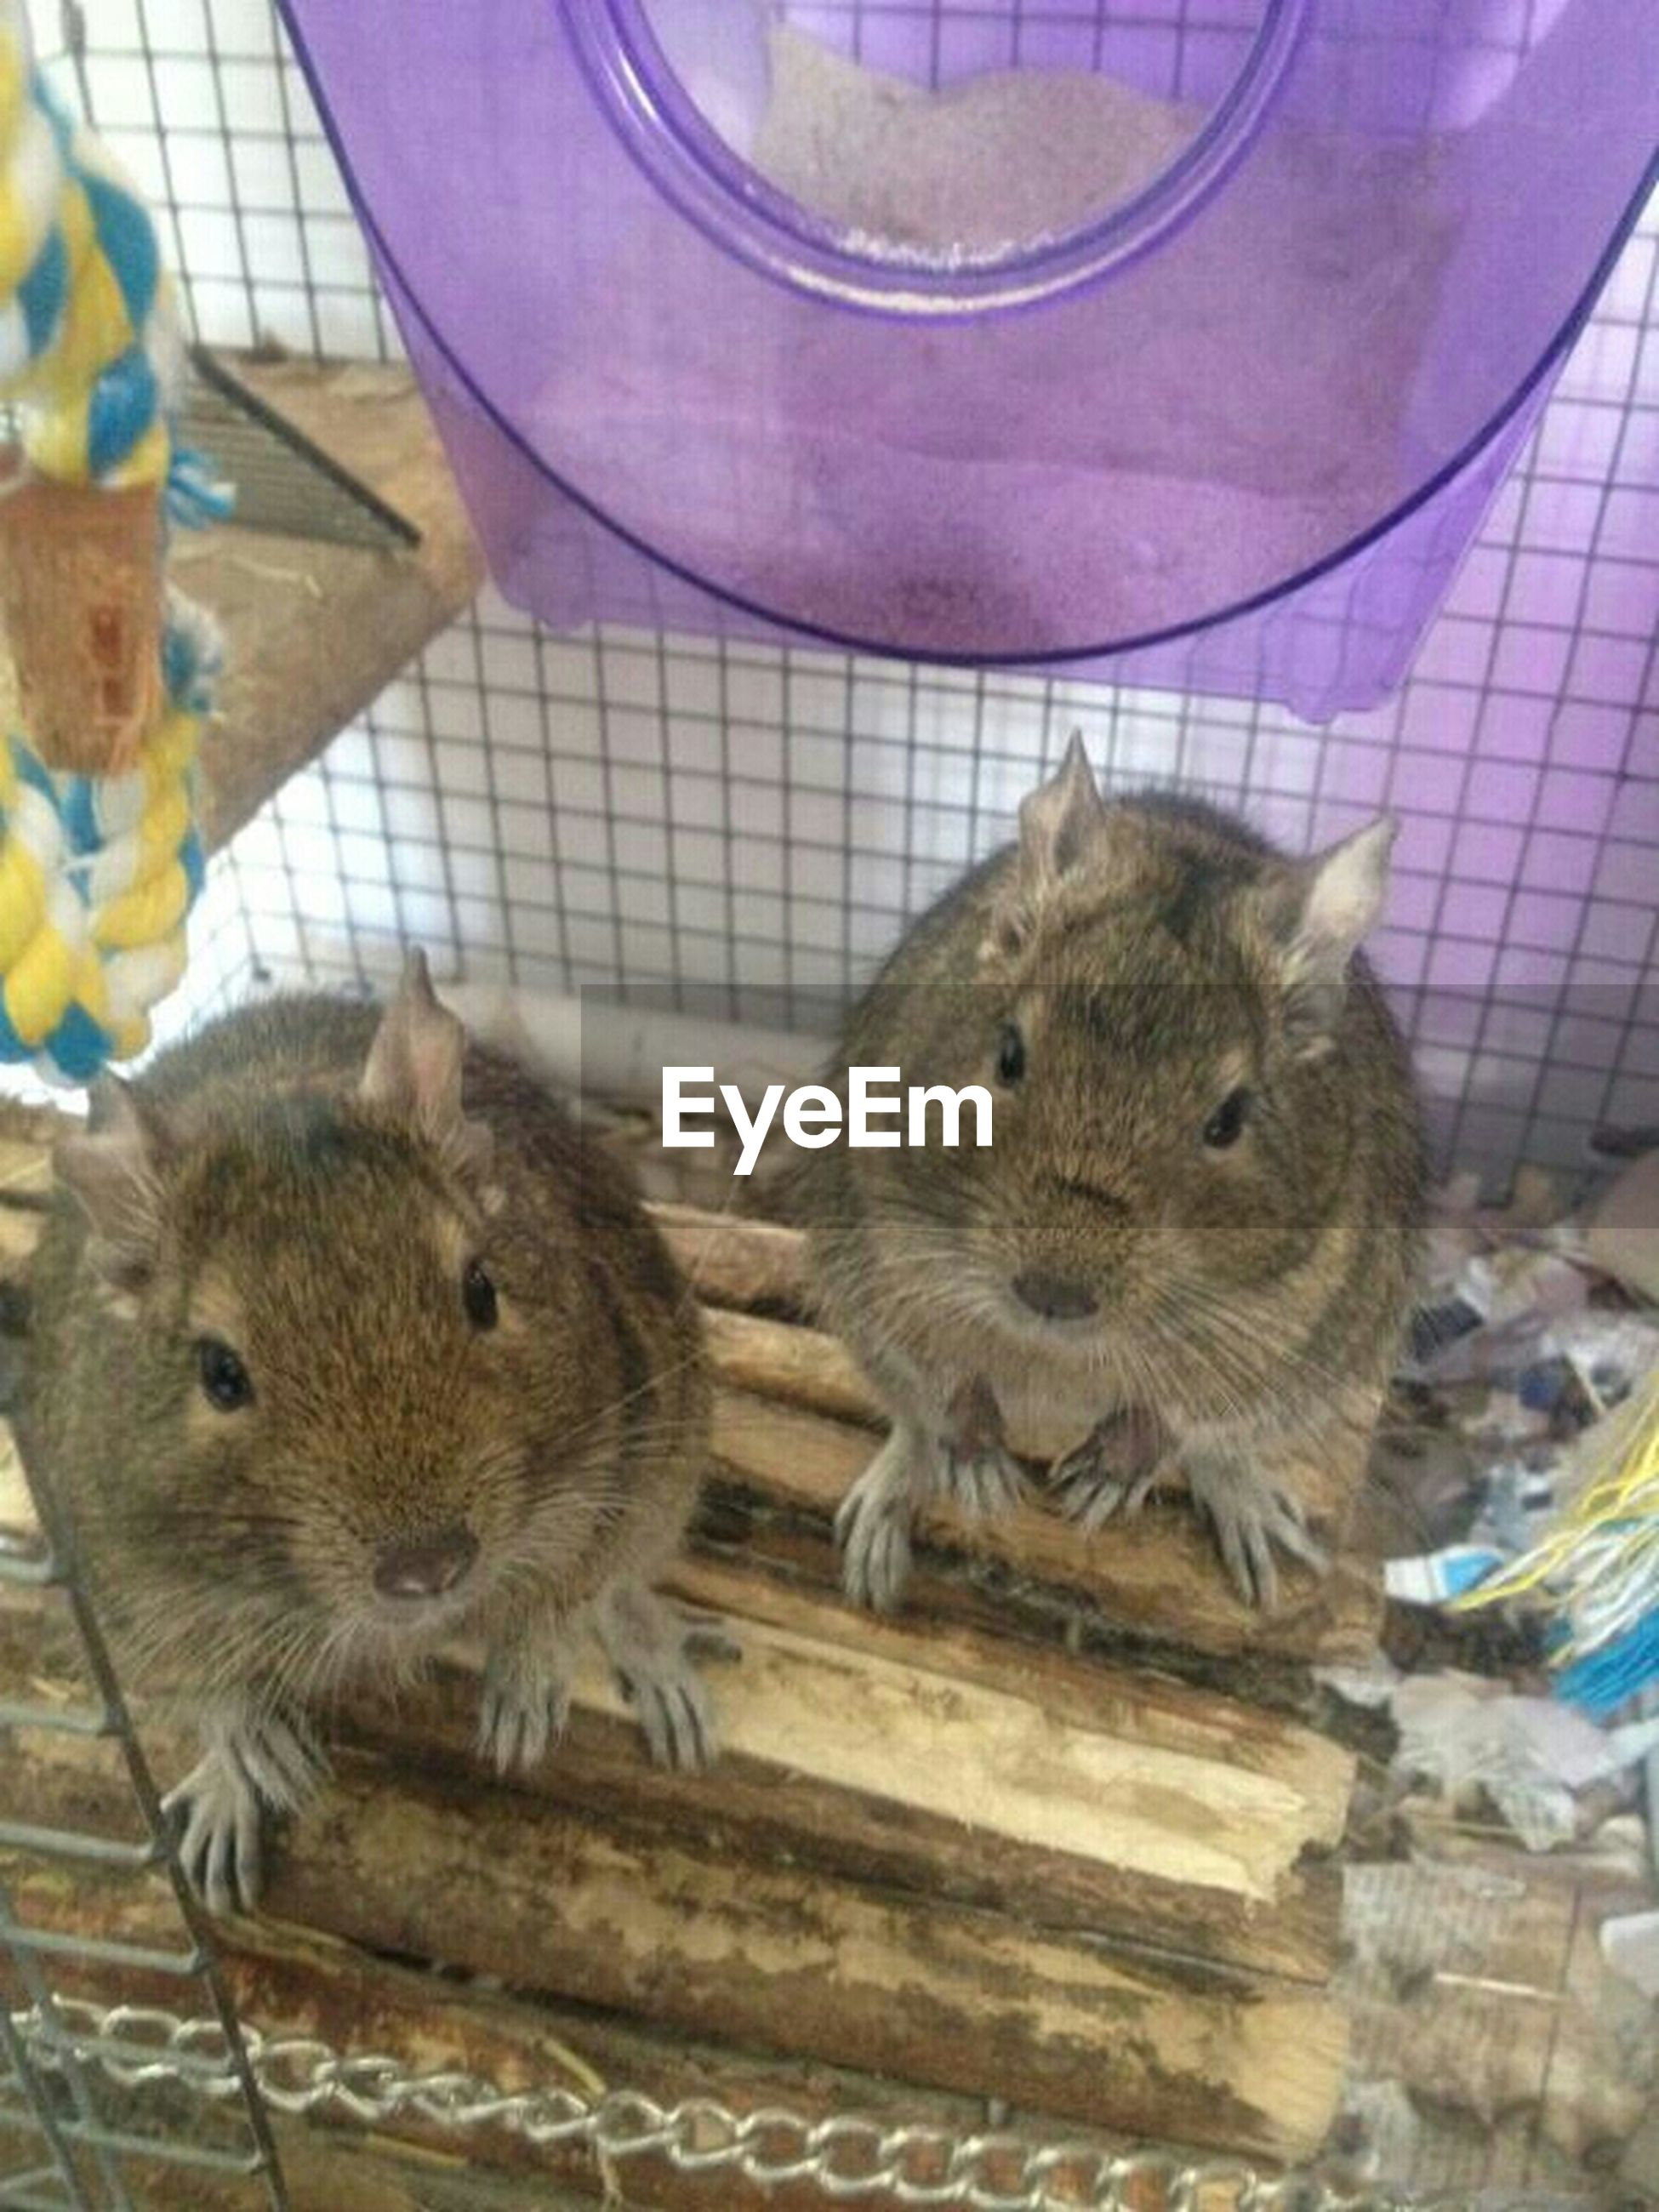 animal themes, animals in captivity, one animal, animals in the wild, indoors, wildlife, mammal, cage, domestic animals, zoo, two animals, rodent, close-up, livestock, squirrel, day, no people, bird, chicken - bird, young animal